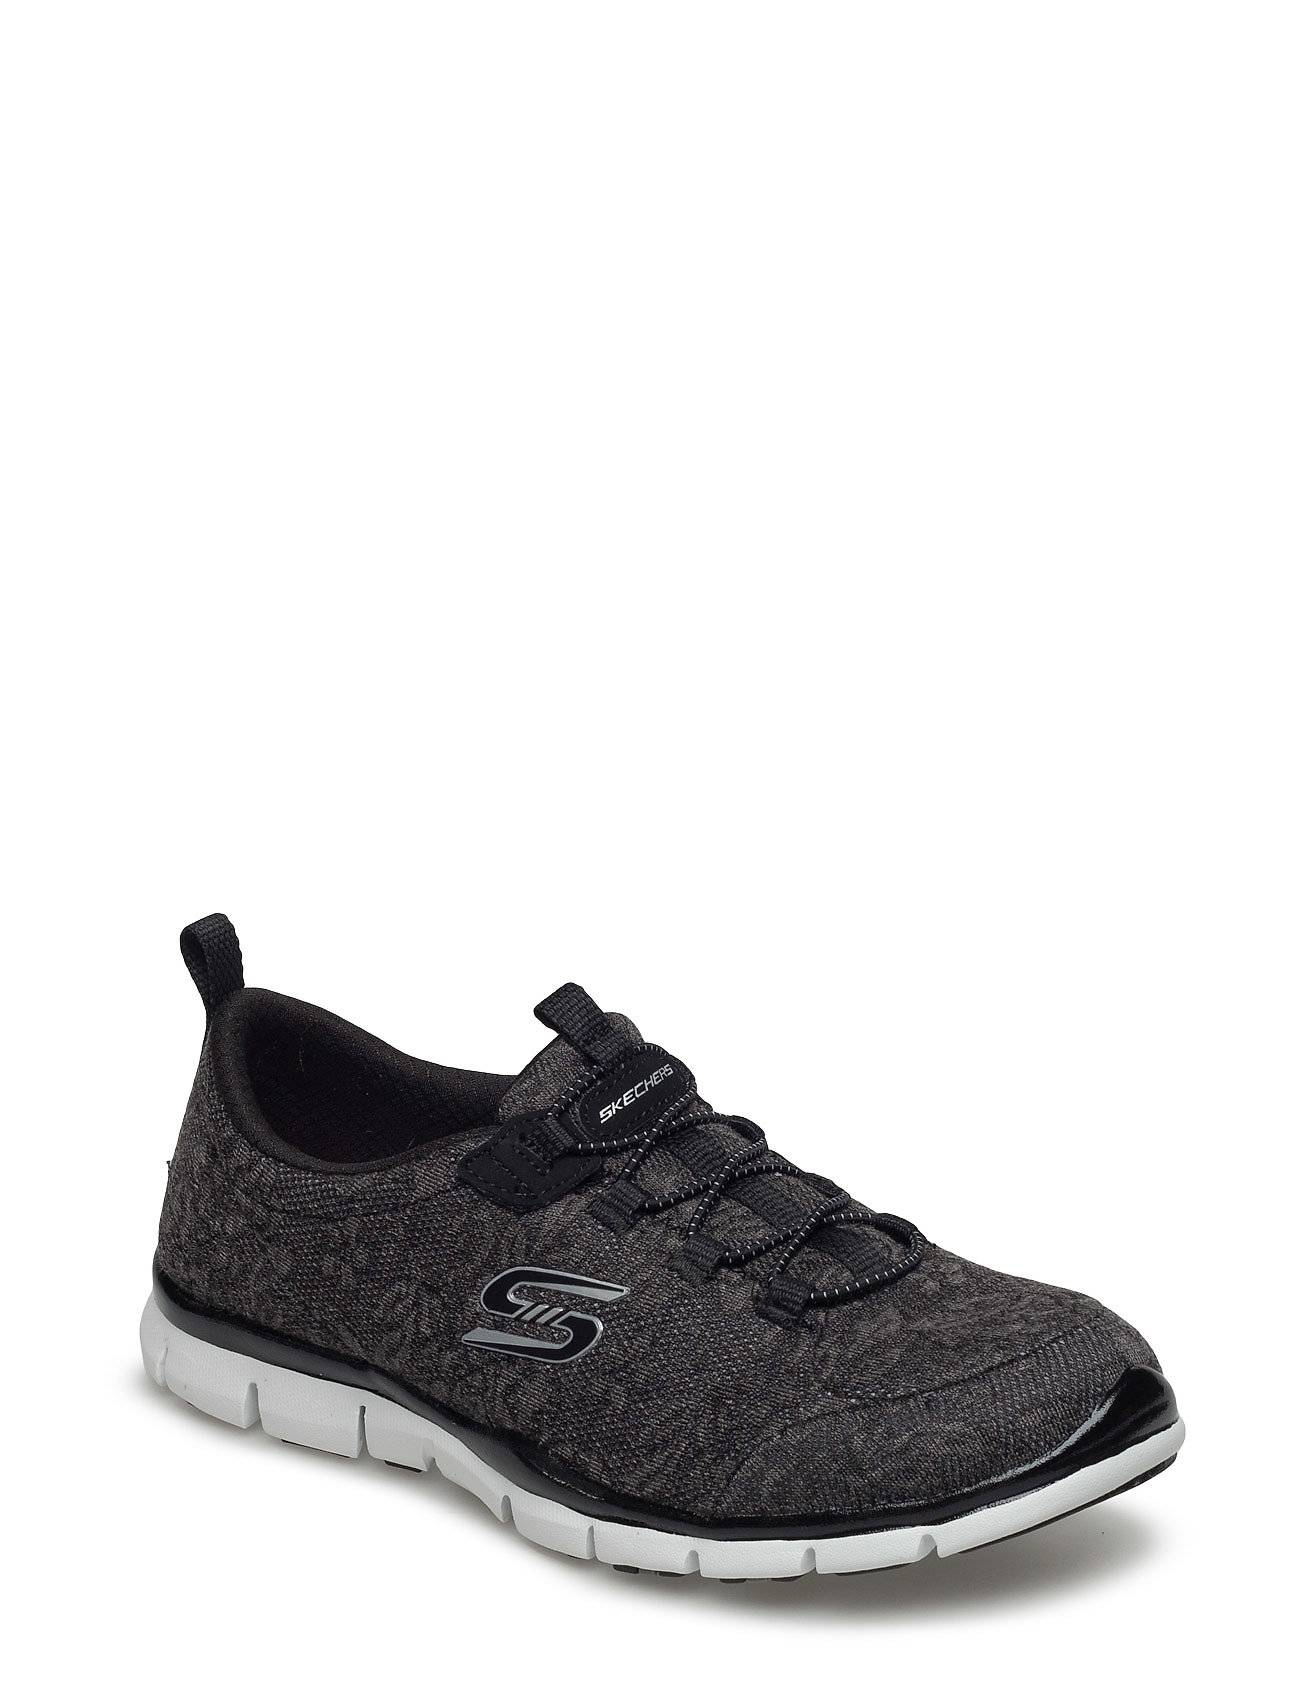 Skechers Womans Gratis - Lacey